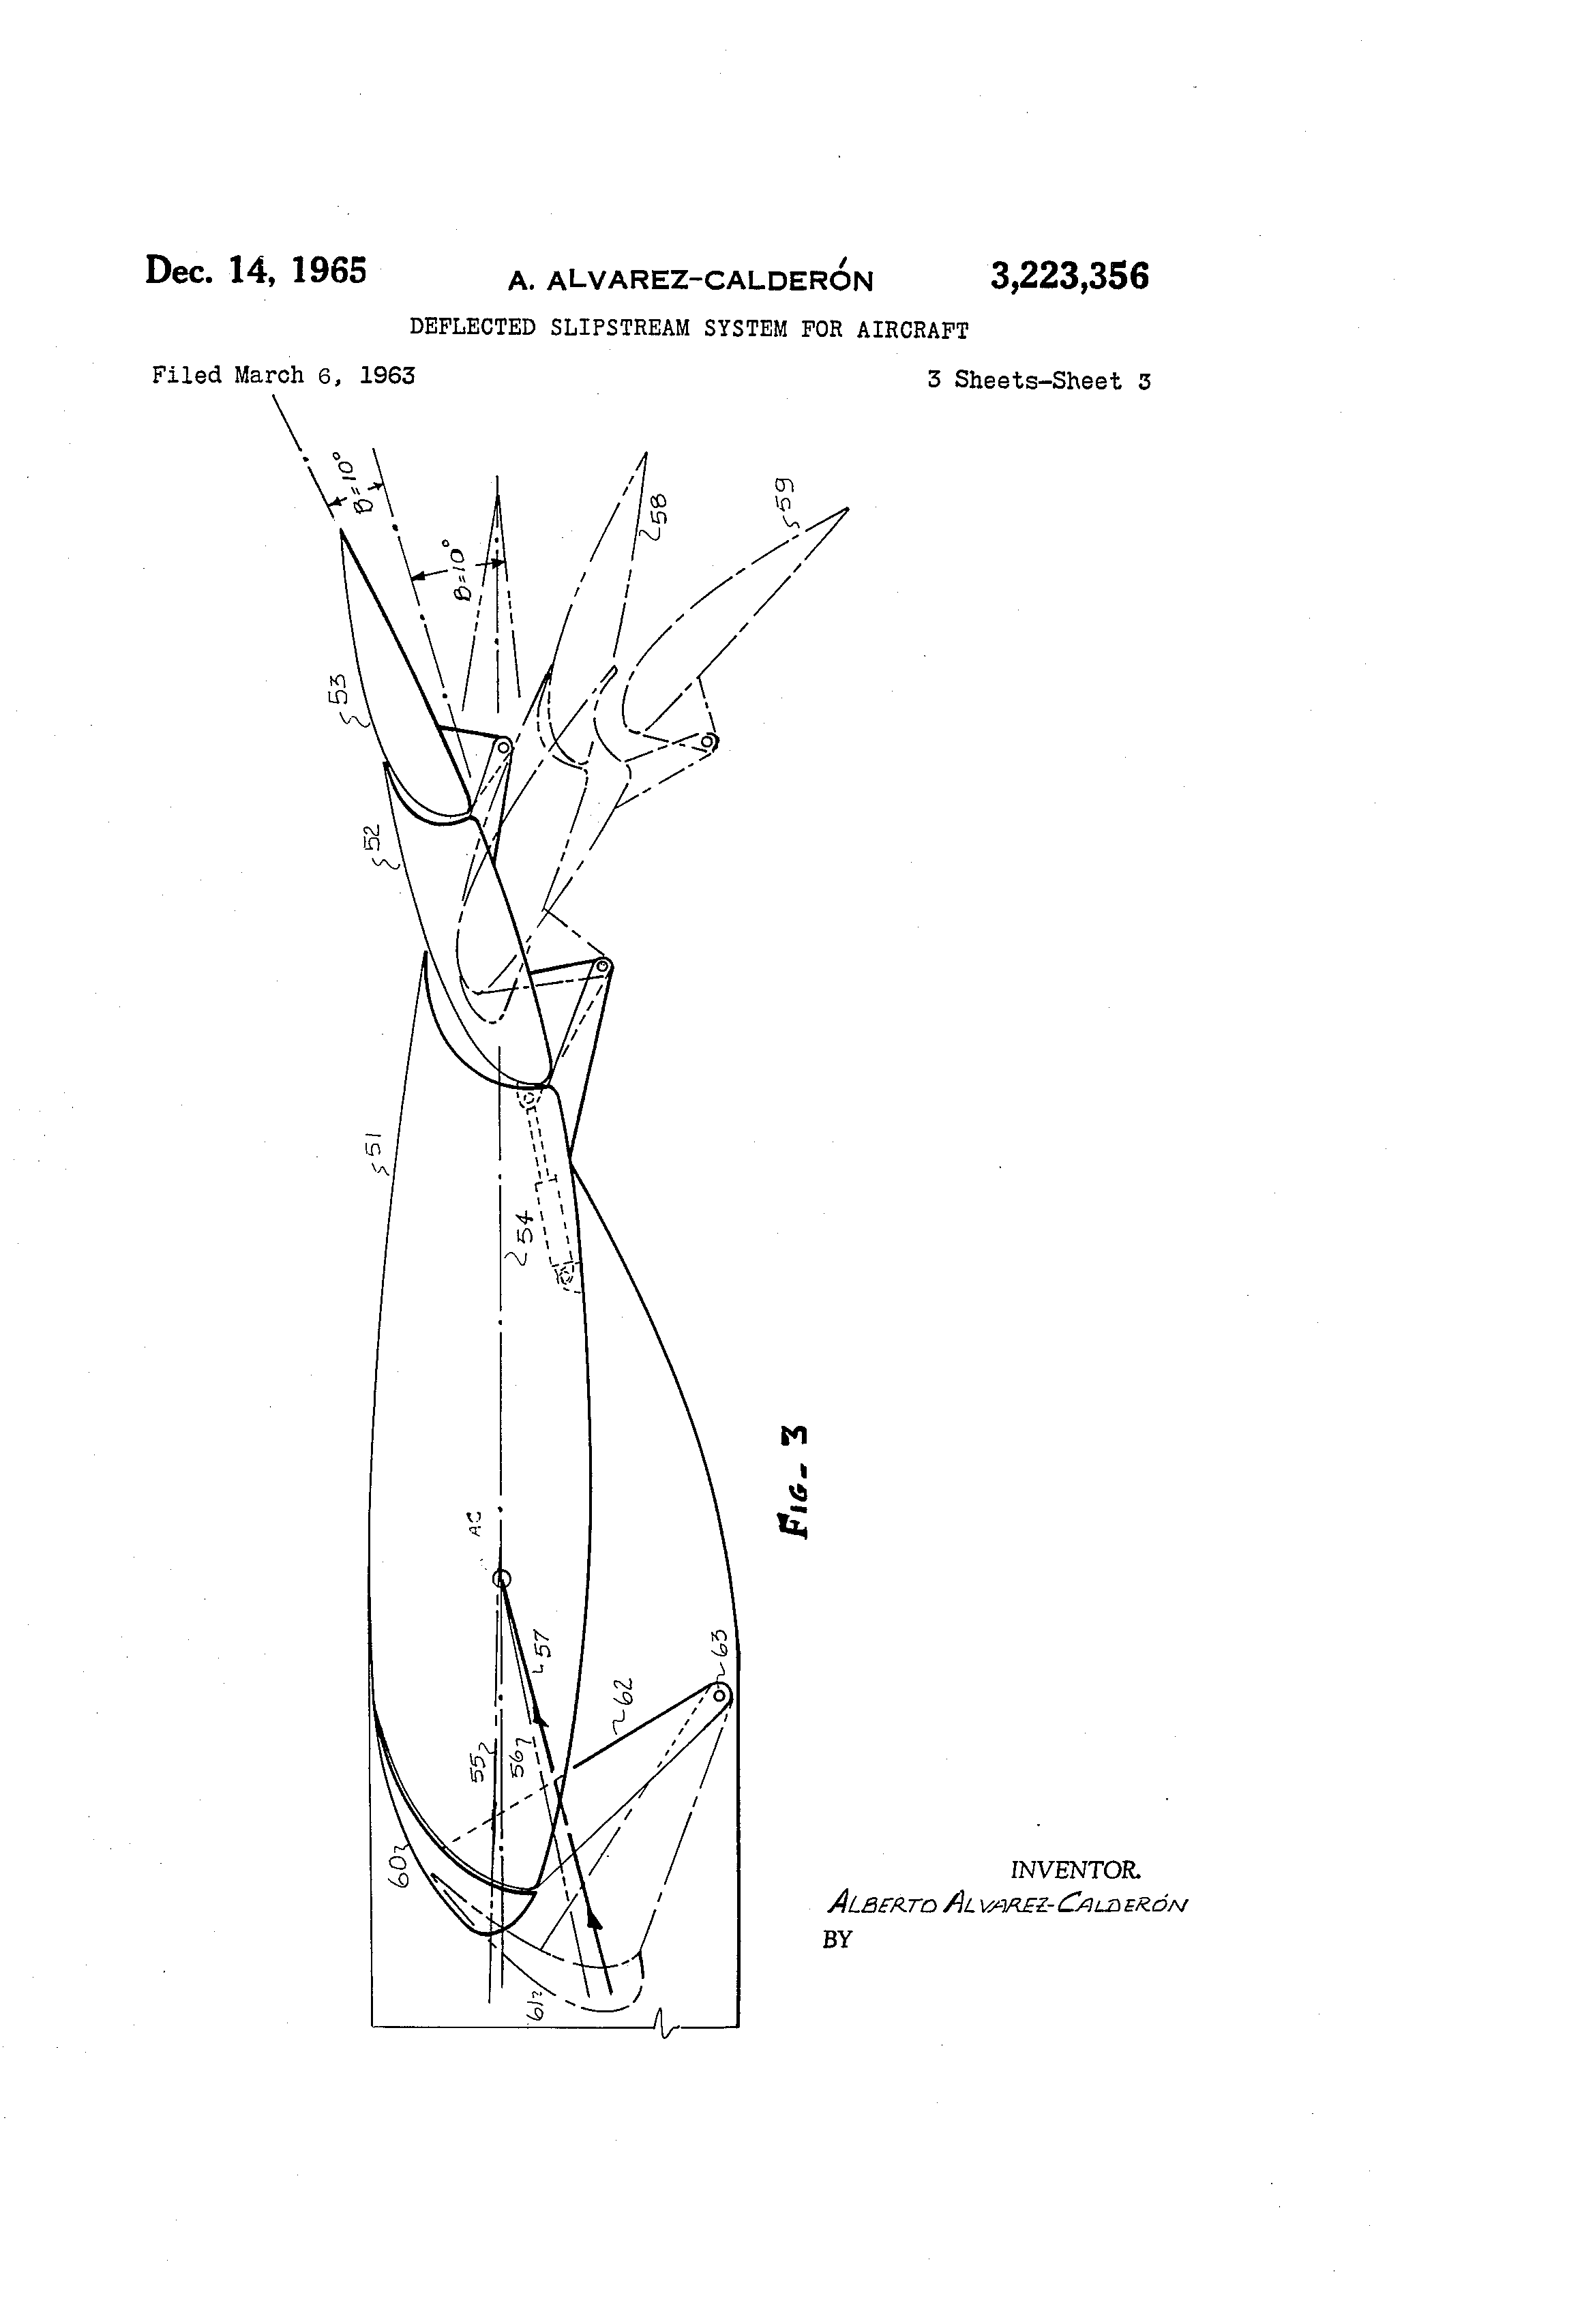 Patent US3223356 - Deflected slipstream system for aircraft - Google